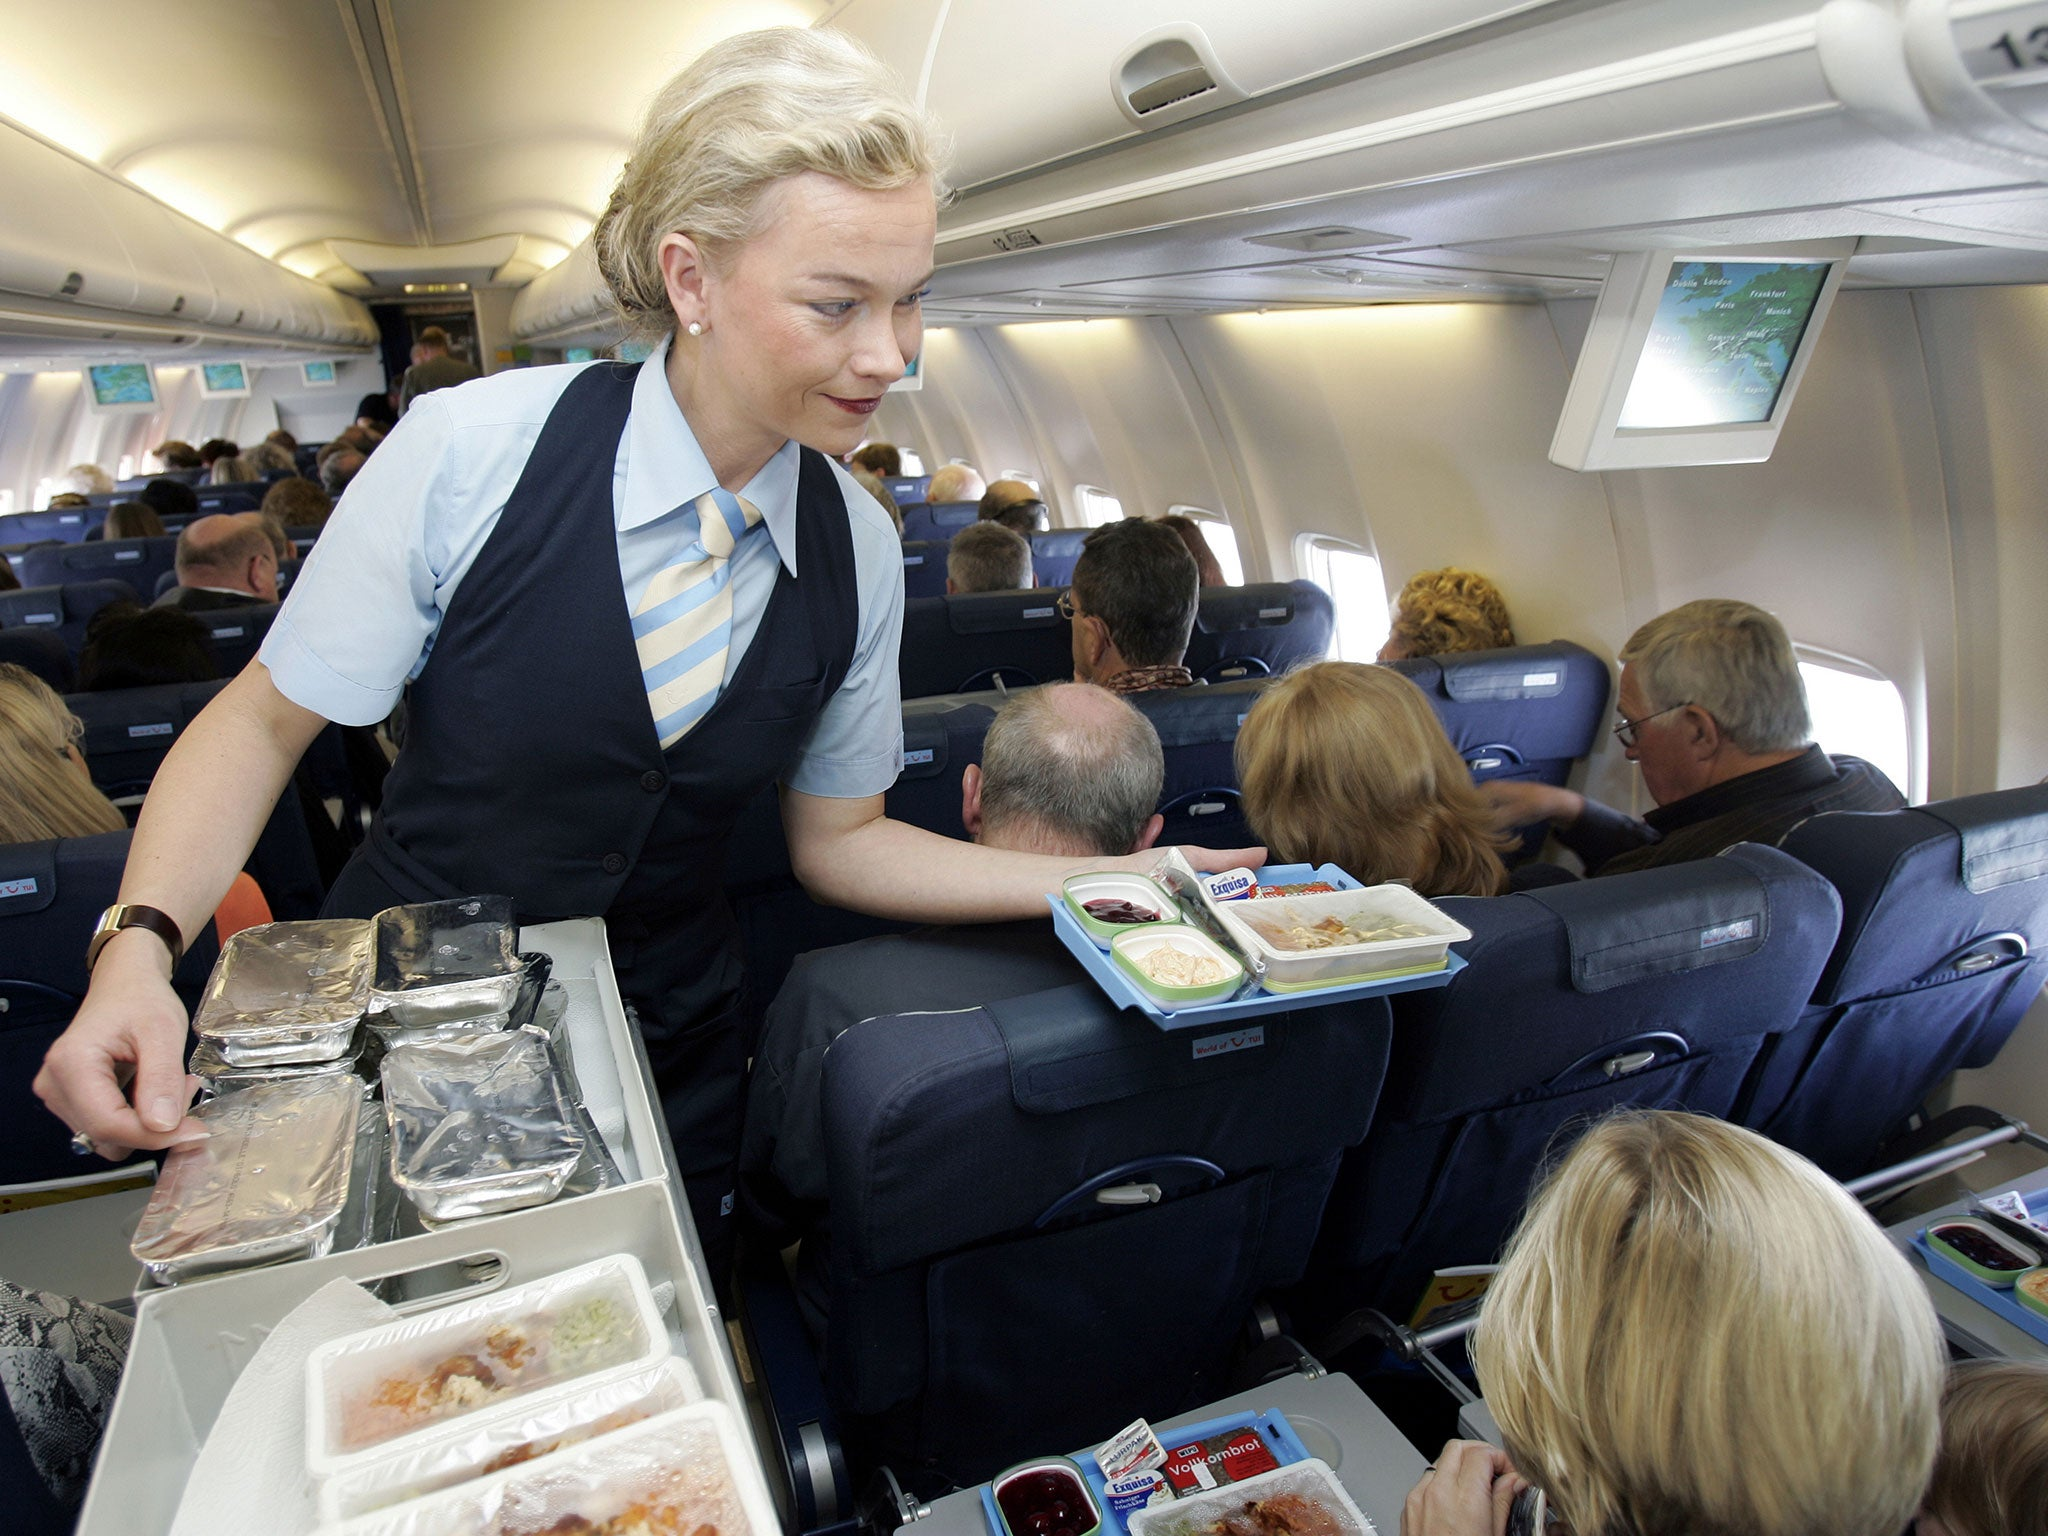 Flight attendants reveal facts about flying that airlines don't tell passengers